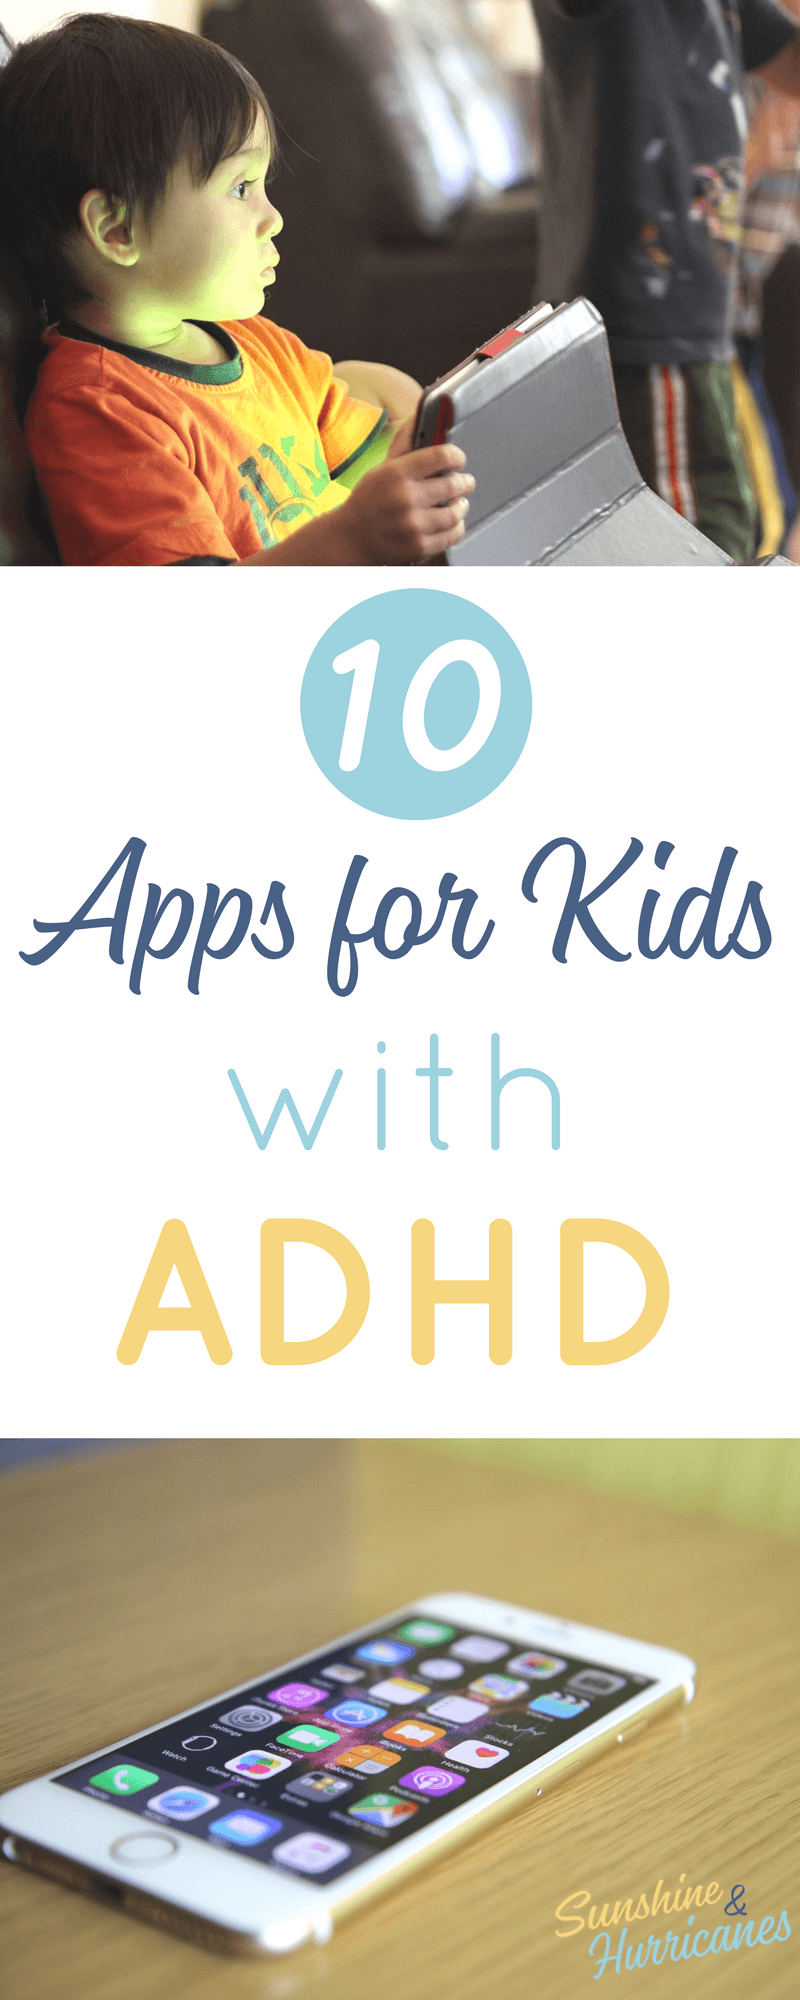 10 ADHD Apps for Kids to help your children learn to stay focused and better manage everyday tasks. Apps|Apps for Kids|Special Needs| Special Needs Apps| Apps for Learning Disabilities